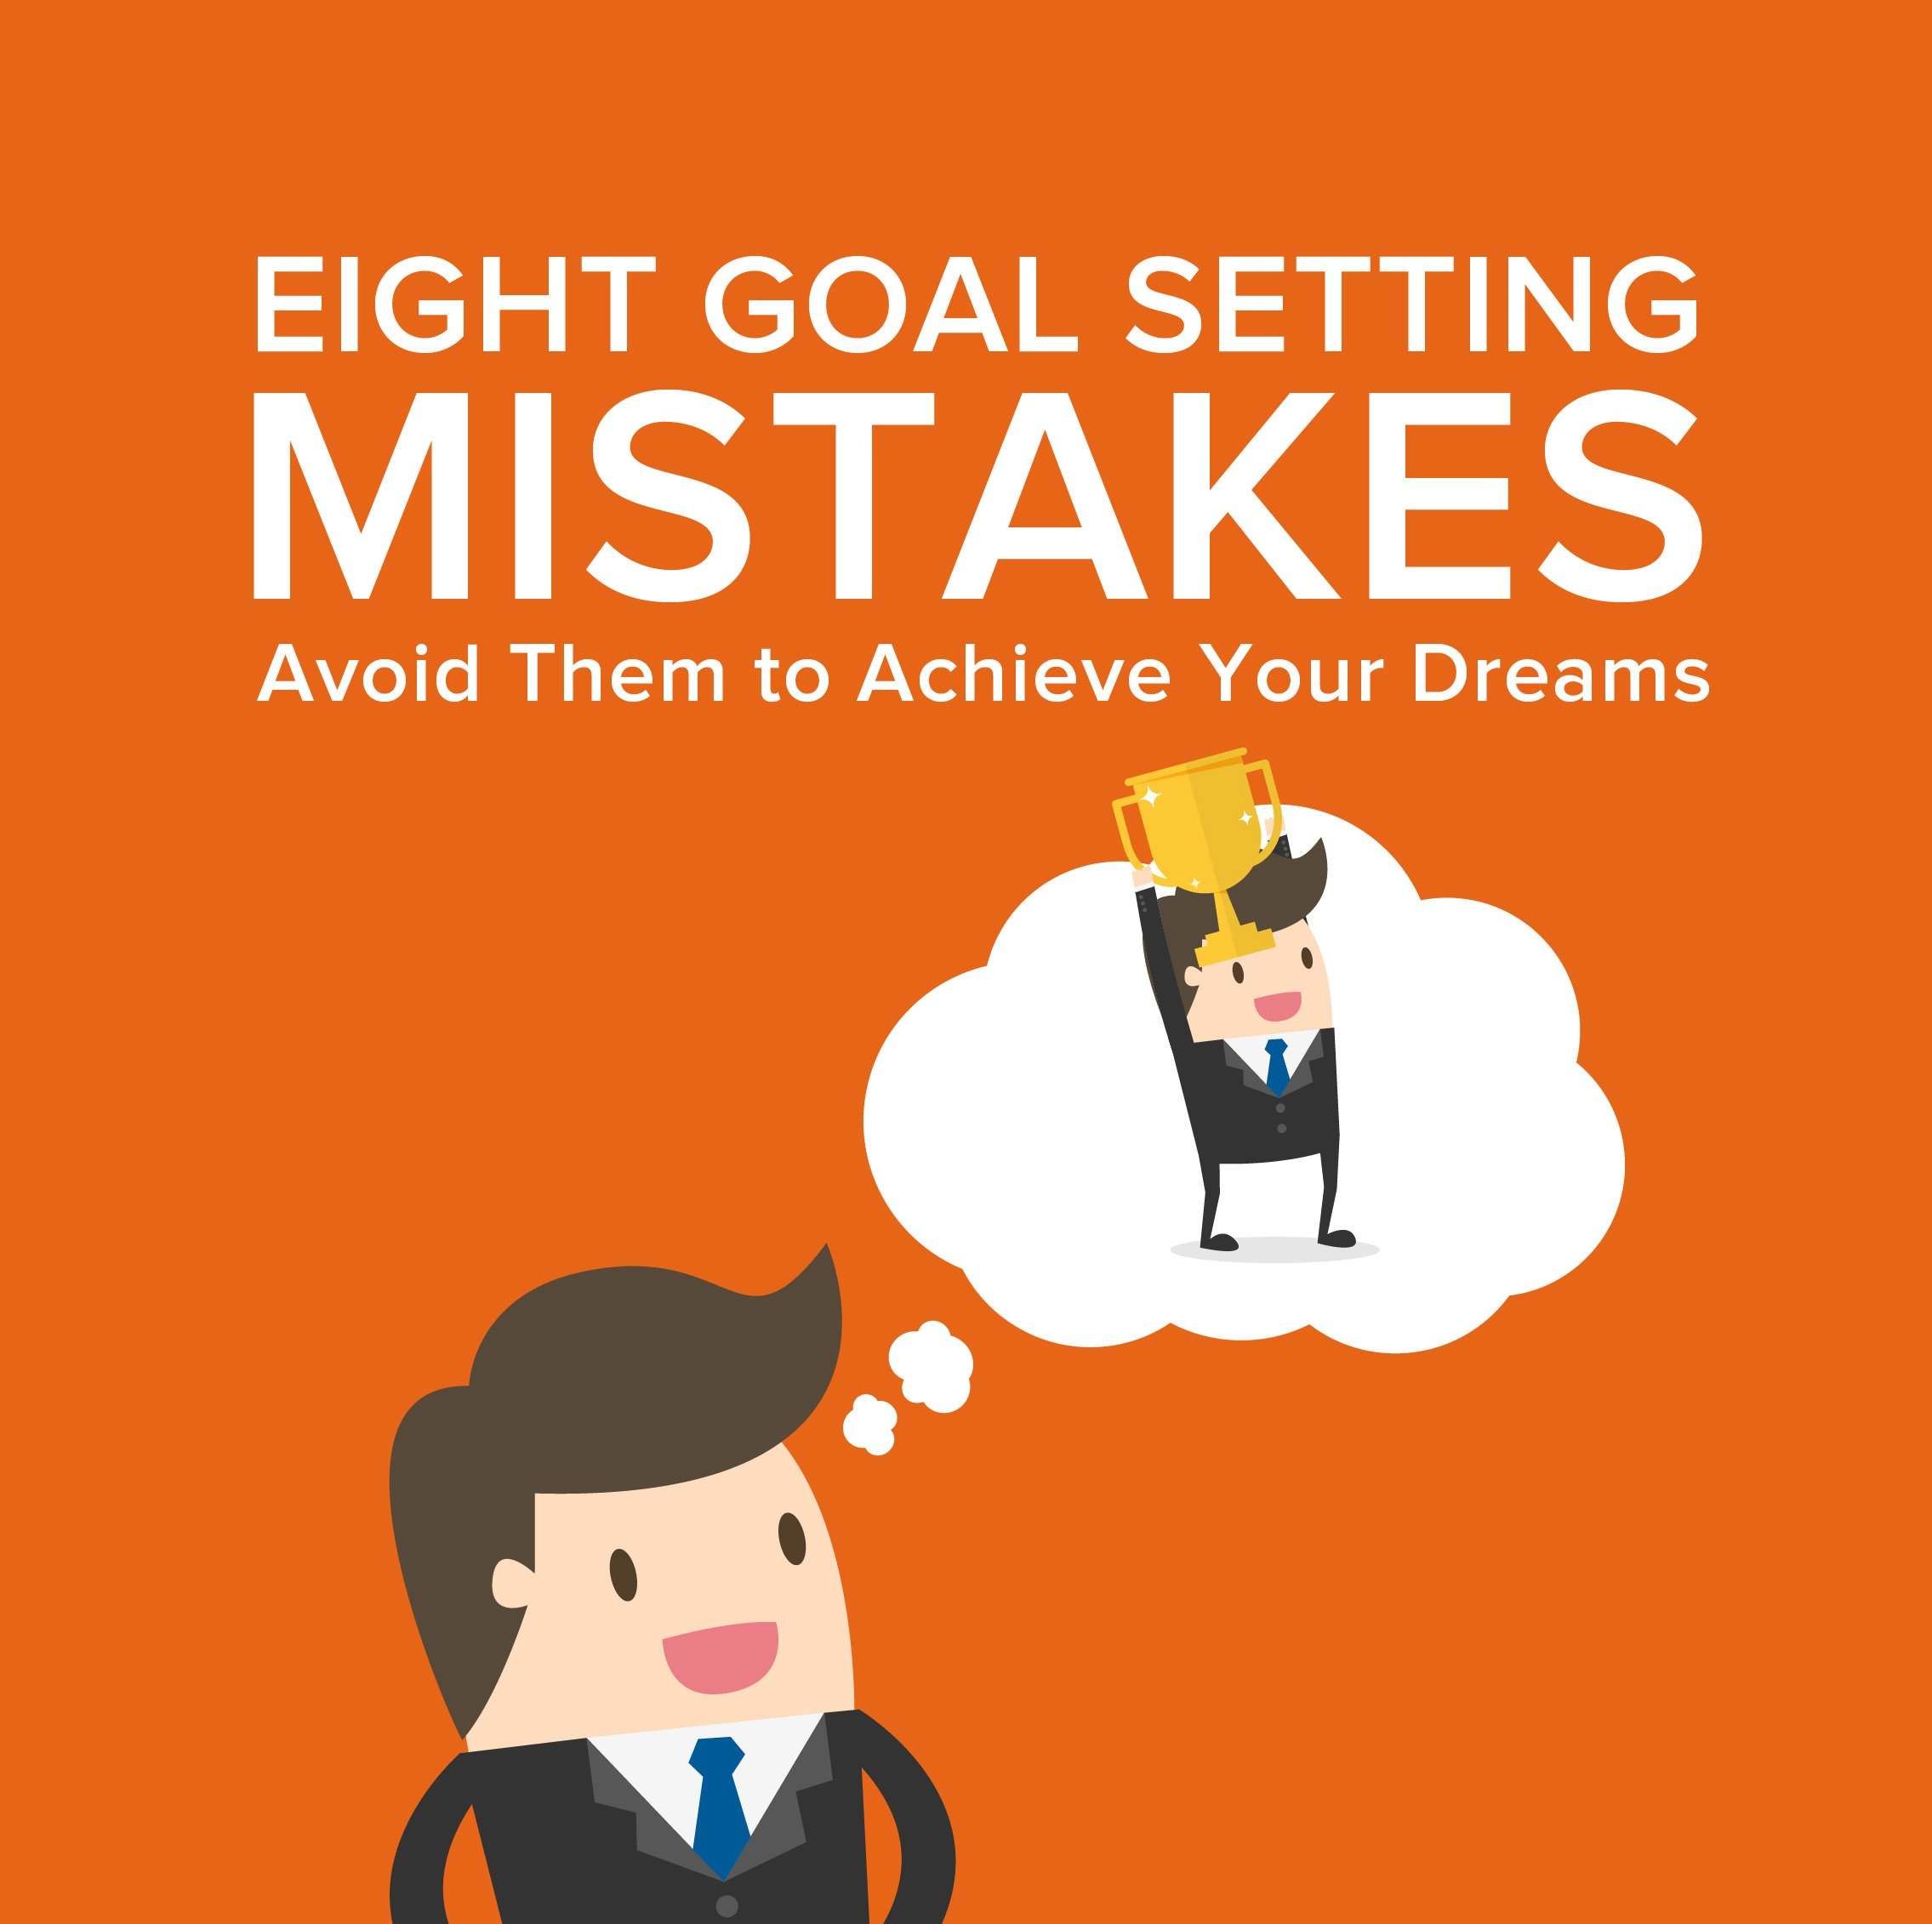 Eight Goal Setting Mistakes Infographic